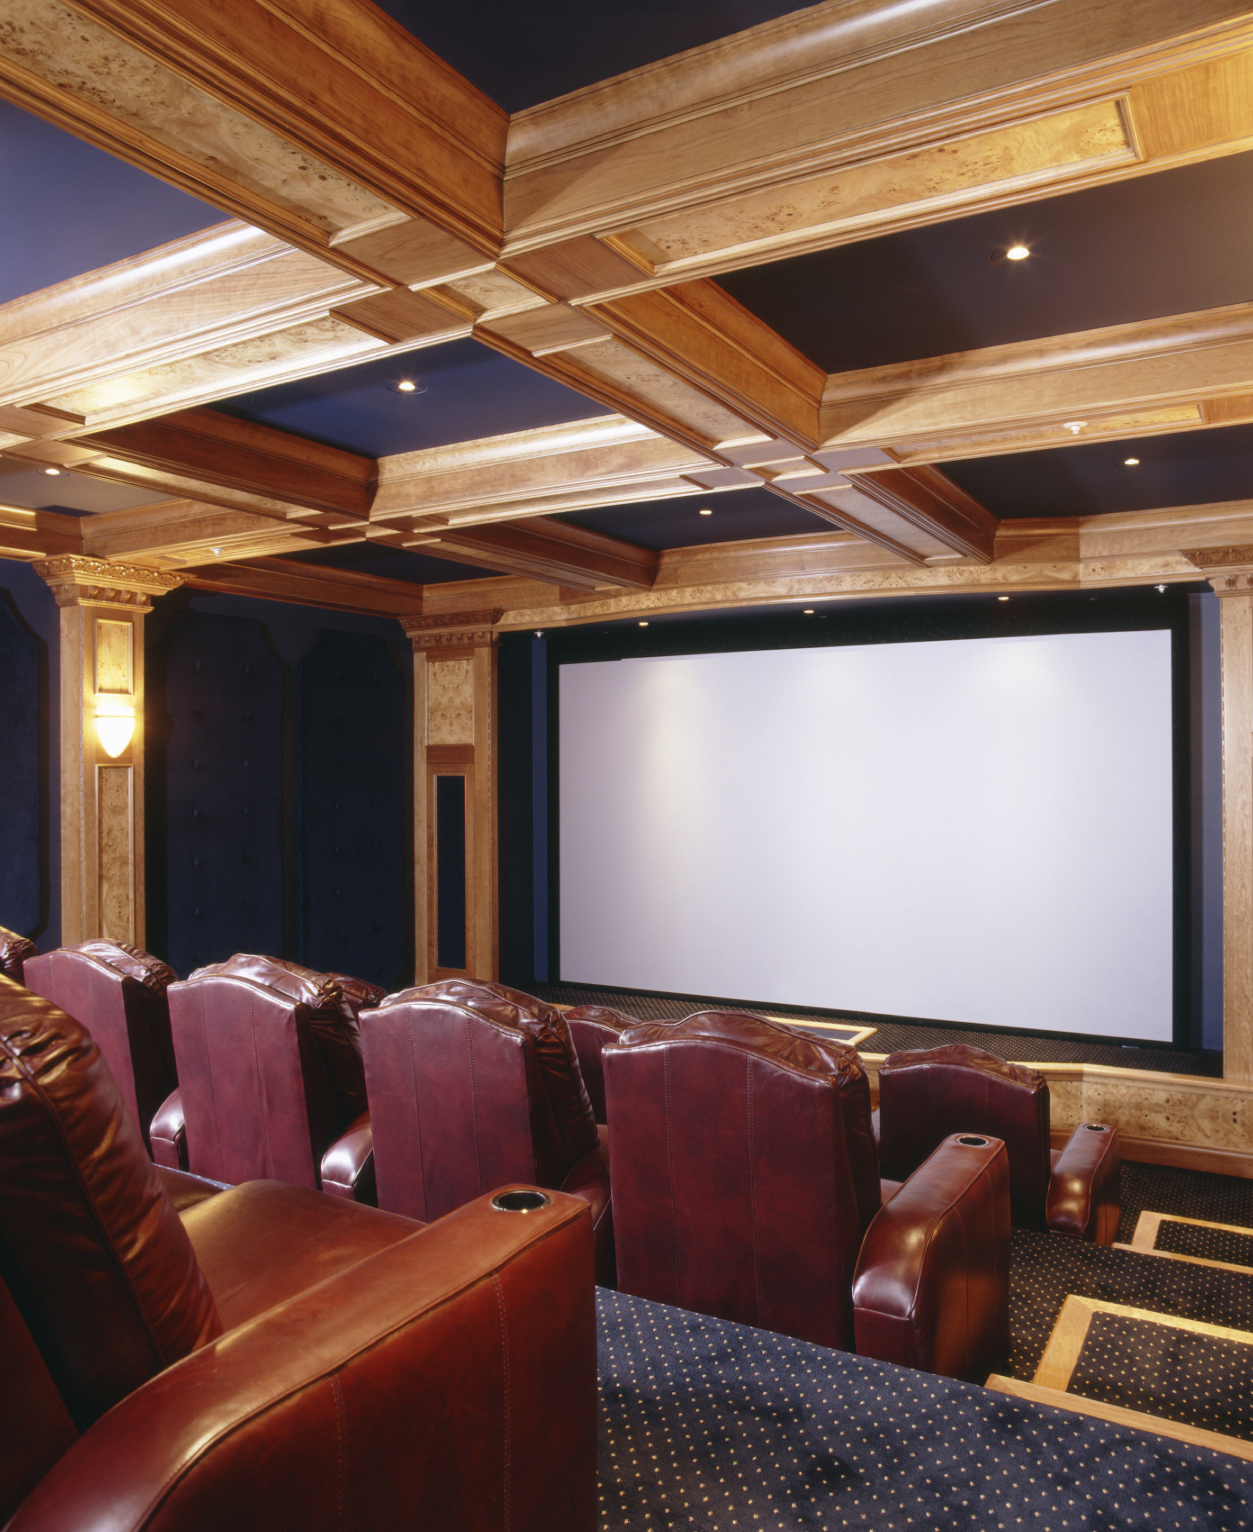 21 Incredible Home Theater Design Ideas Decor Pictures: 32 Luxury Home Media Room Design Ideas (Incredible Pictures